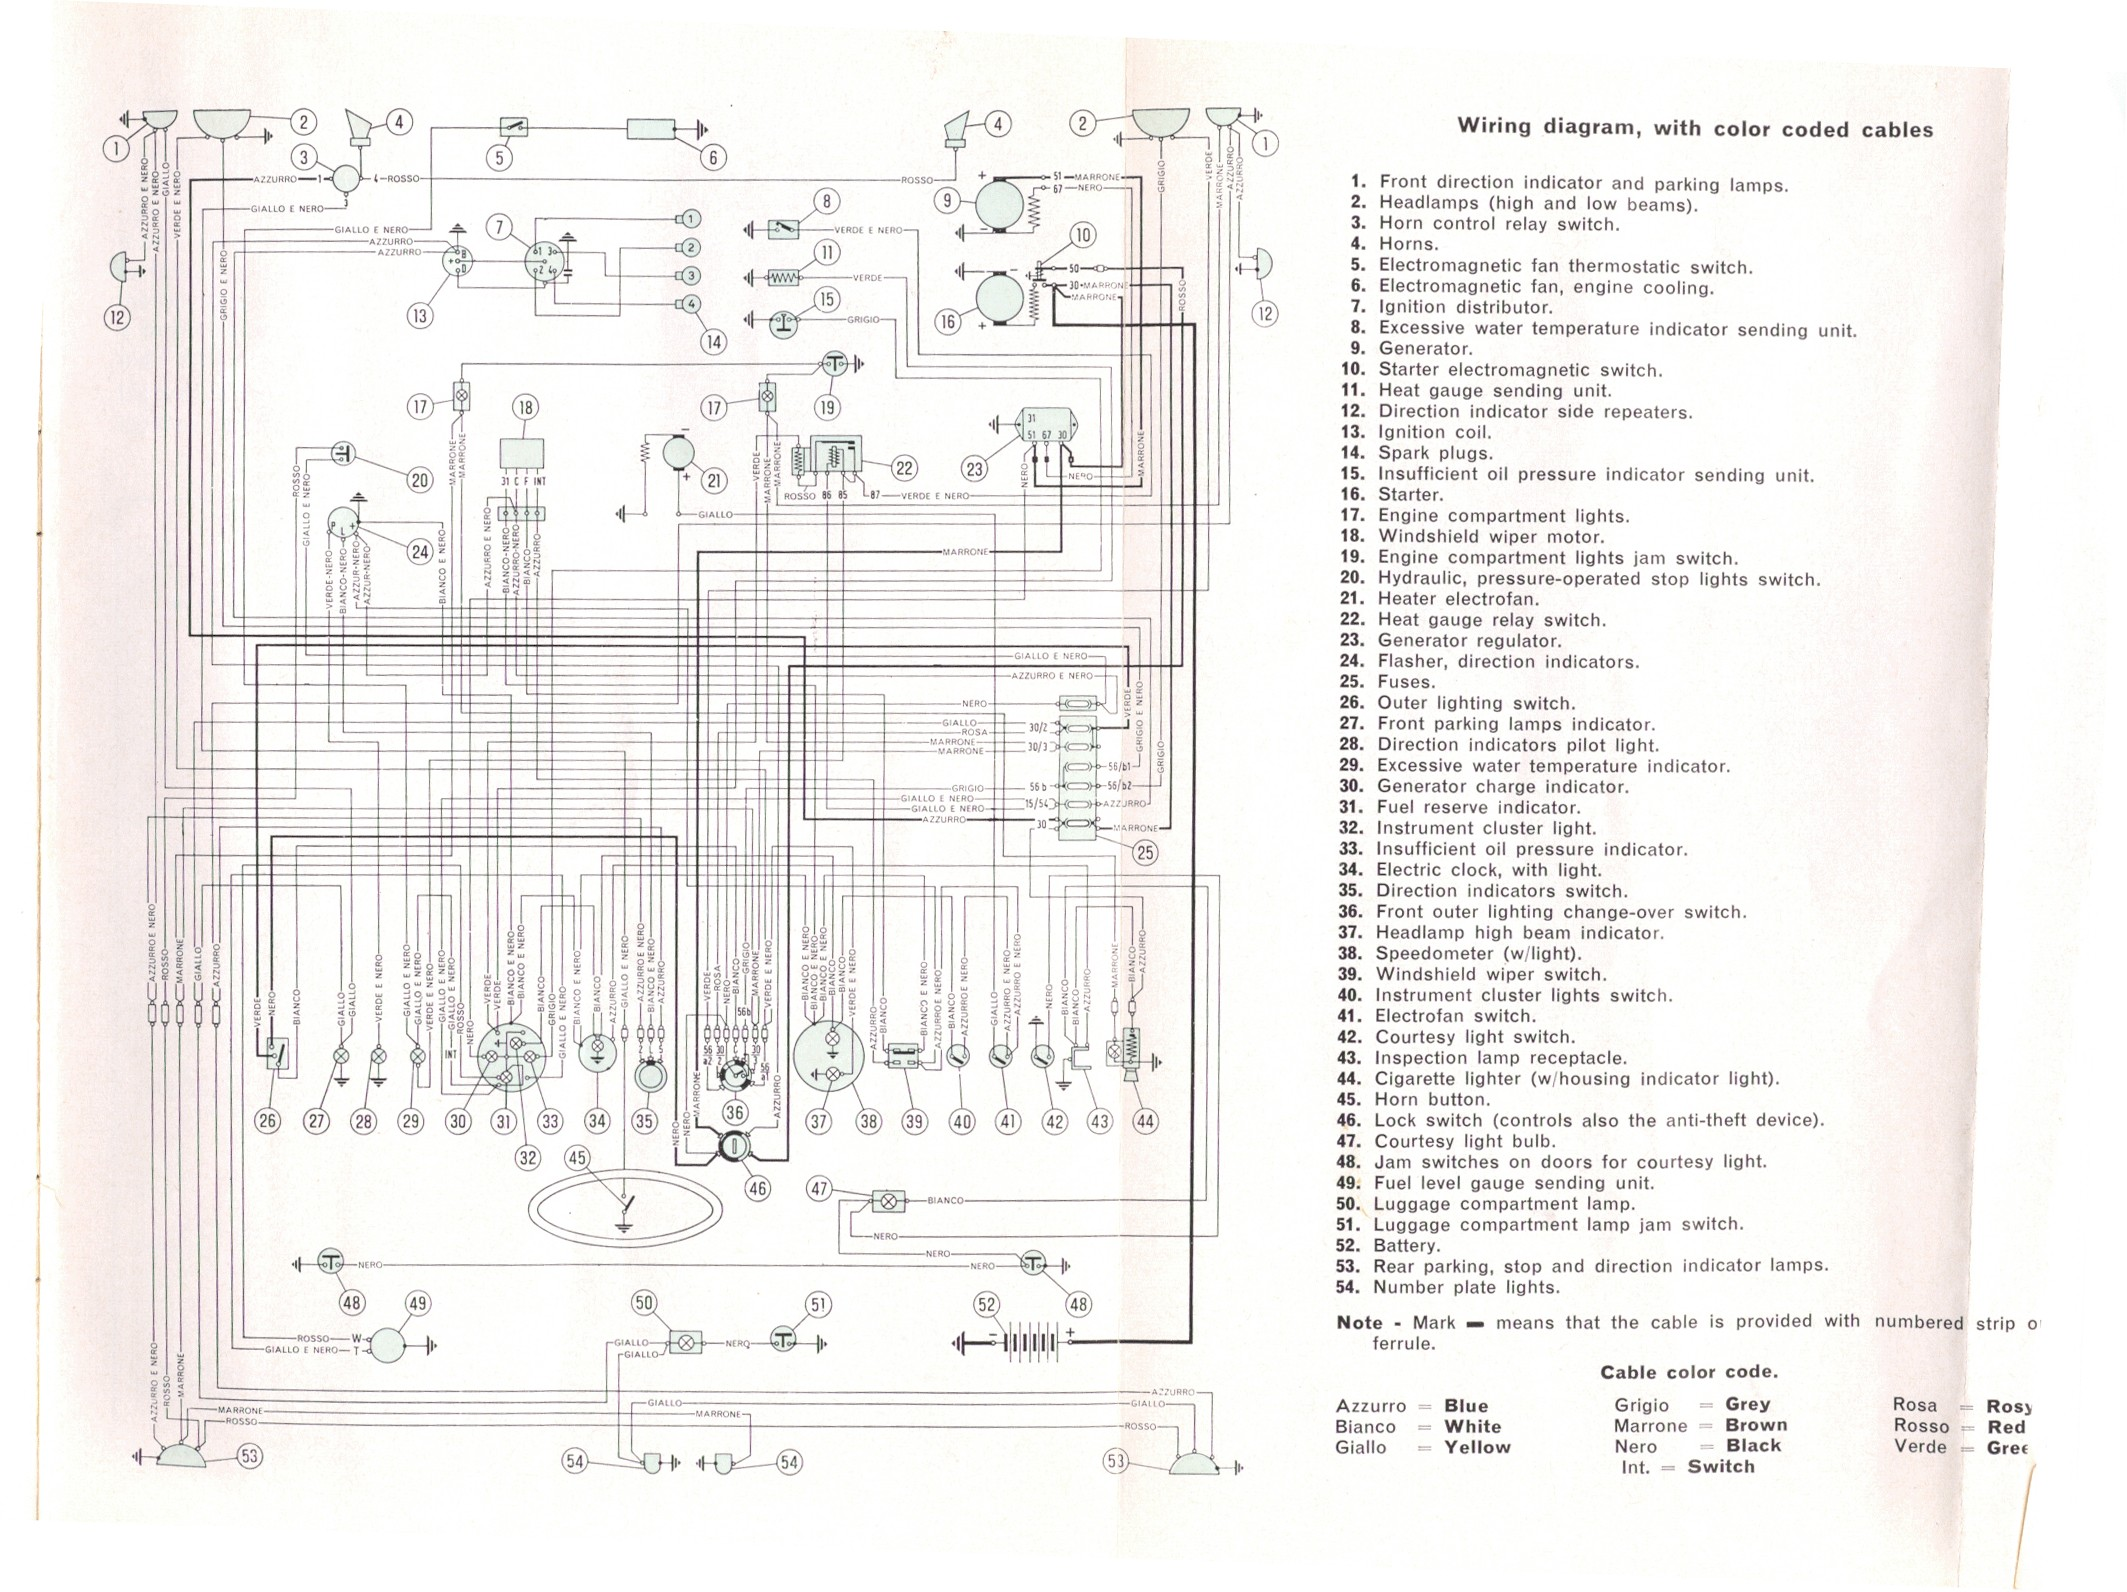 1981 fiat wiring diagram wiring diagram rh w74 blacz de